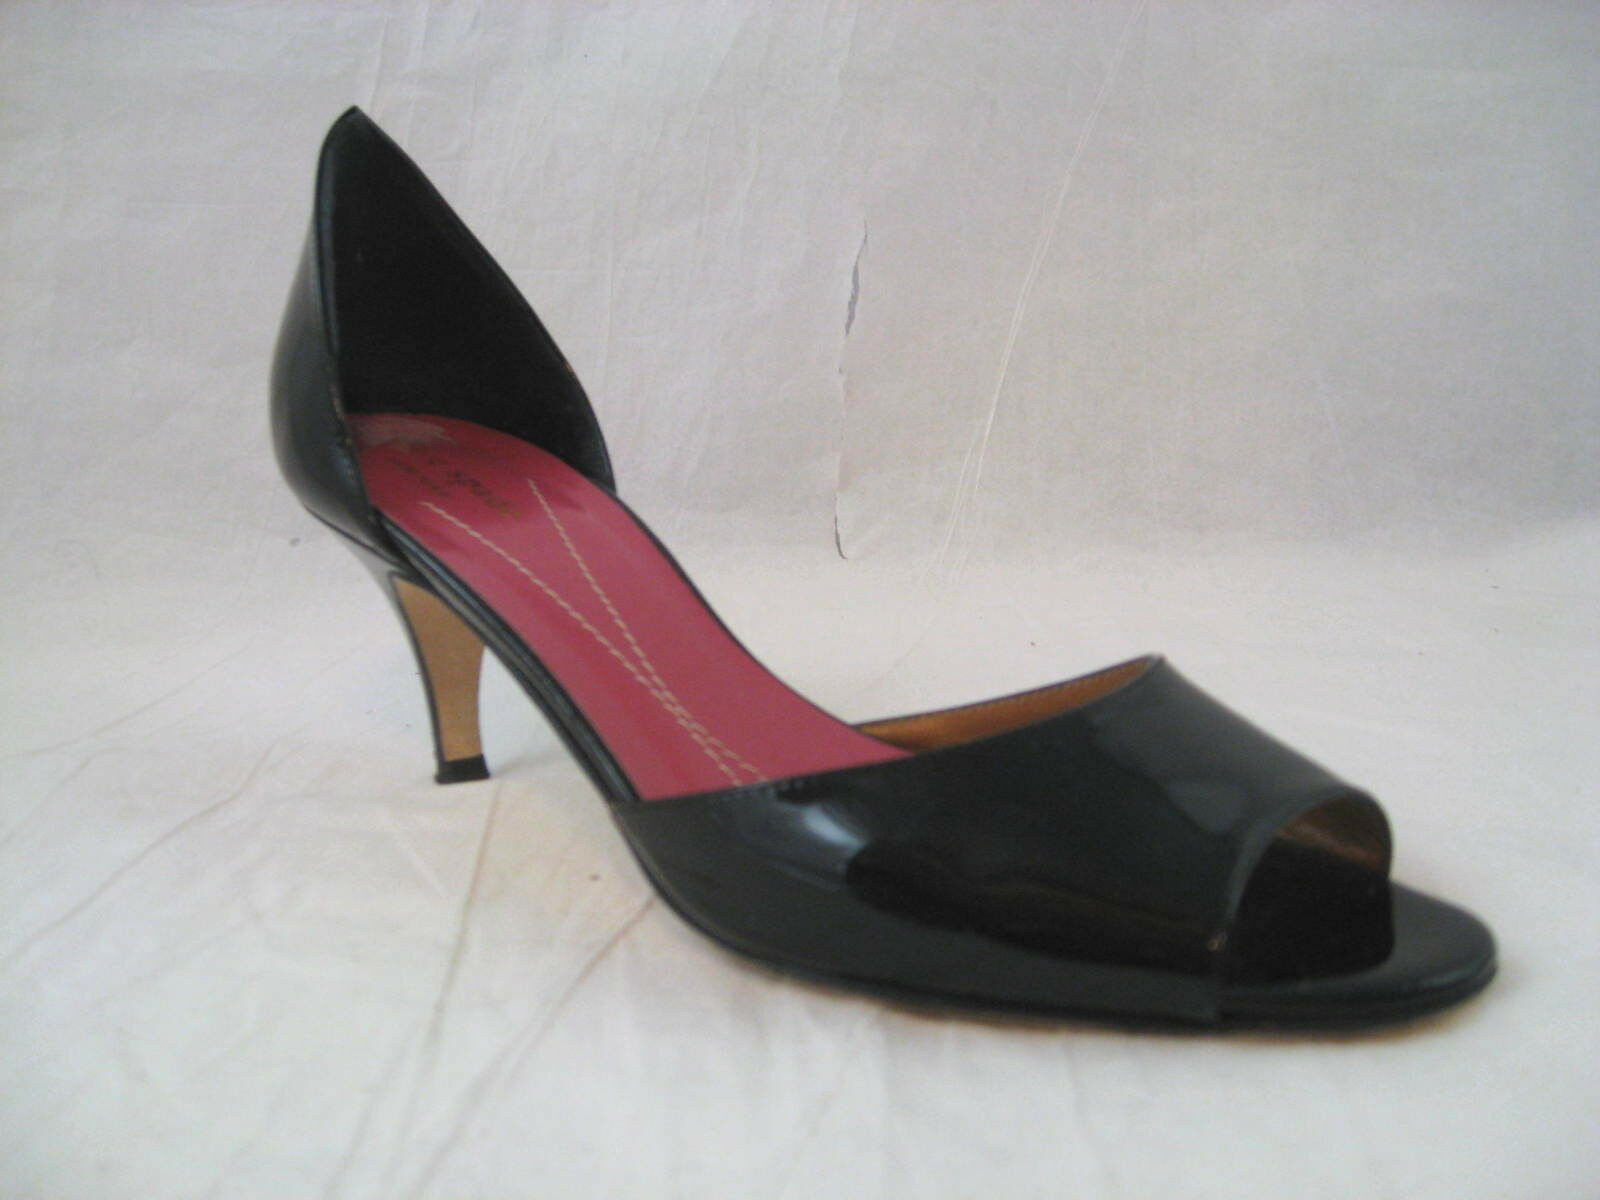 Kate Spade New York Womens Peep Toe Black Patent Pump shoes Size 8 B Made Italy